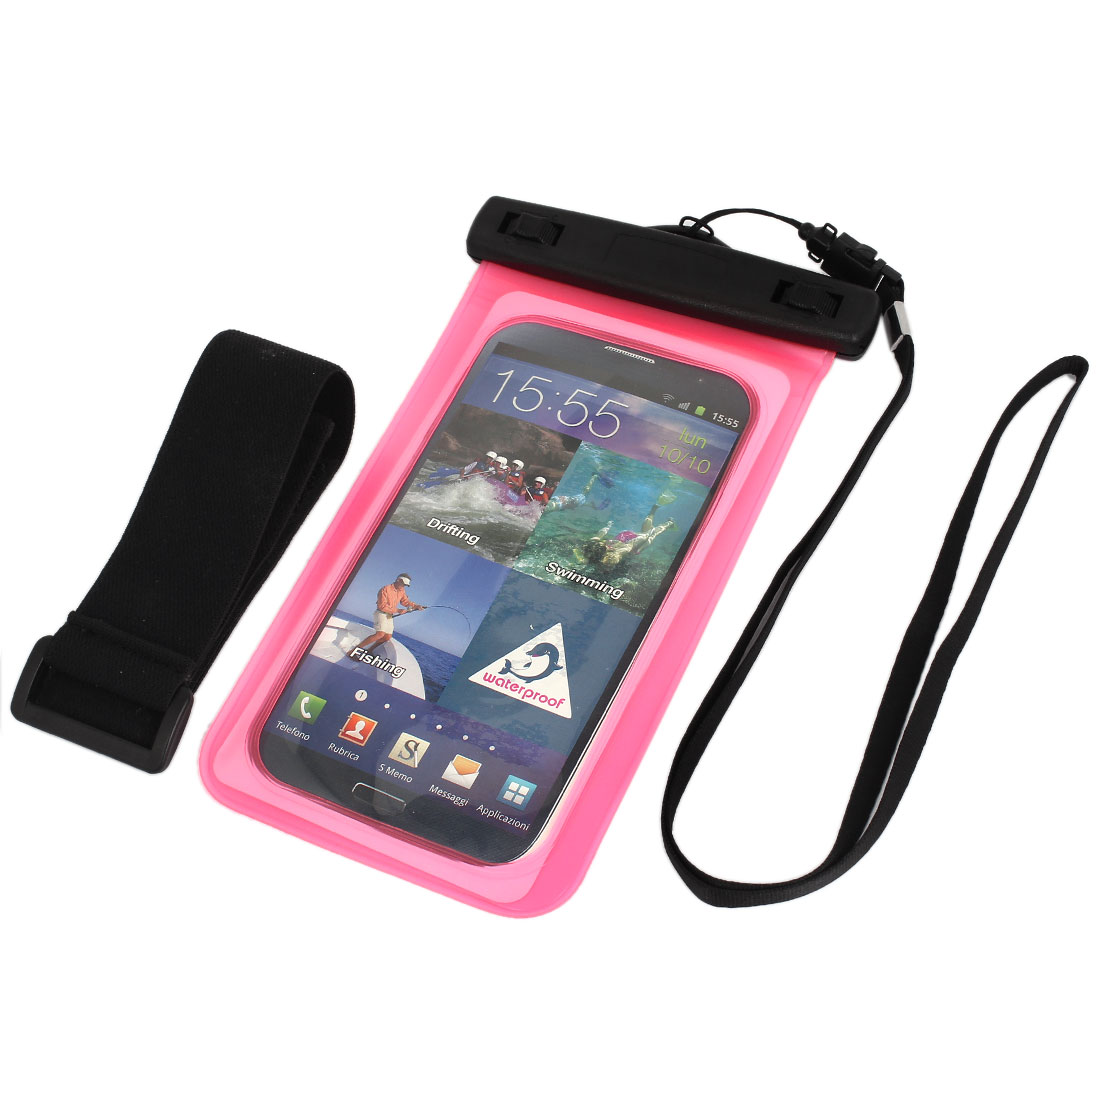 Waterproof Bag Holder Pink for iPhone 6plus w Neck Strap Armband